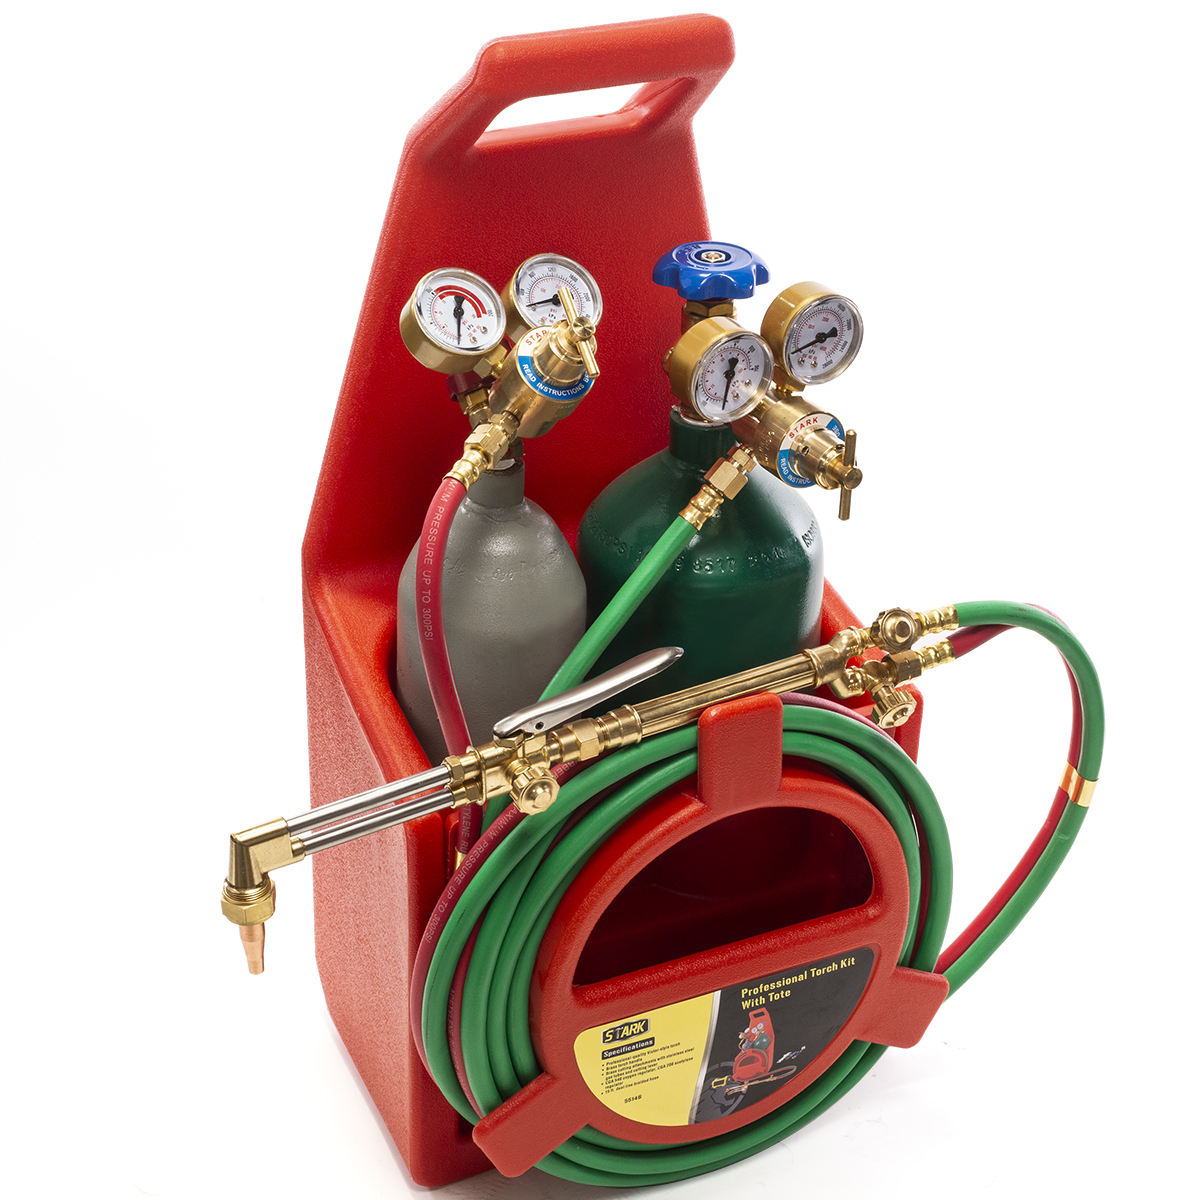 Details about Portable Professional Oxygen Acetylene Oxy Welding Cutting  Weld Torch Tank Kit